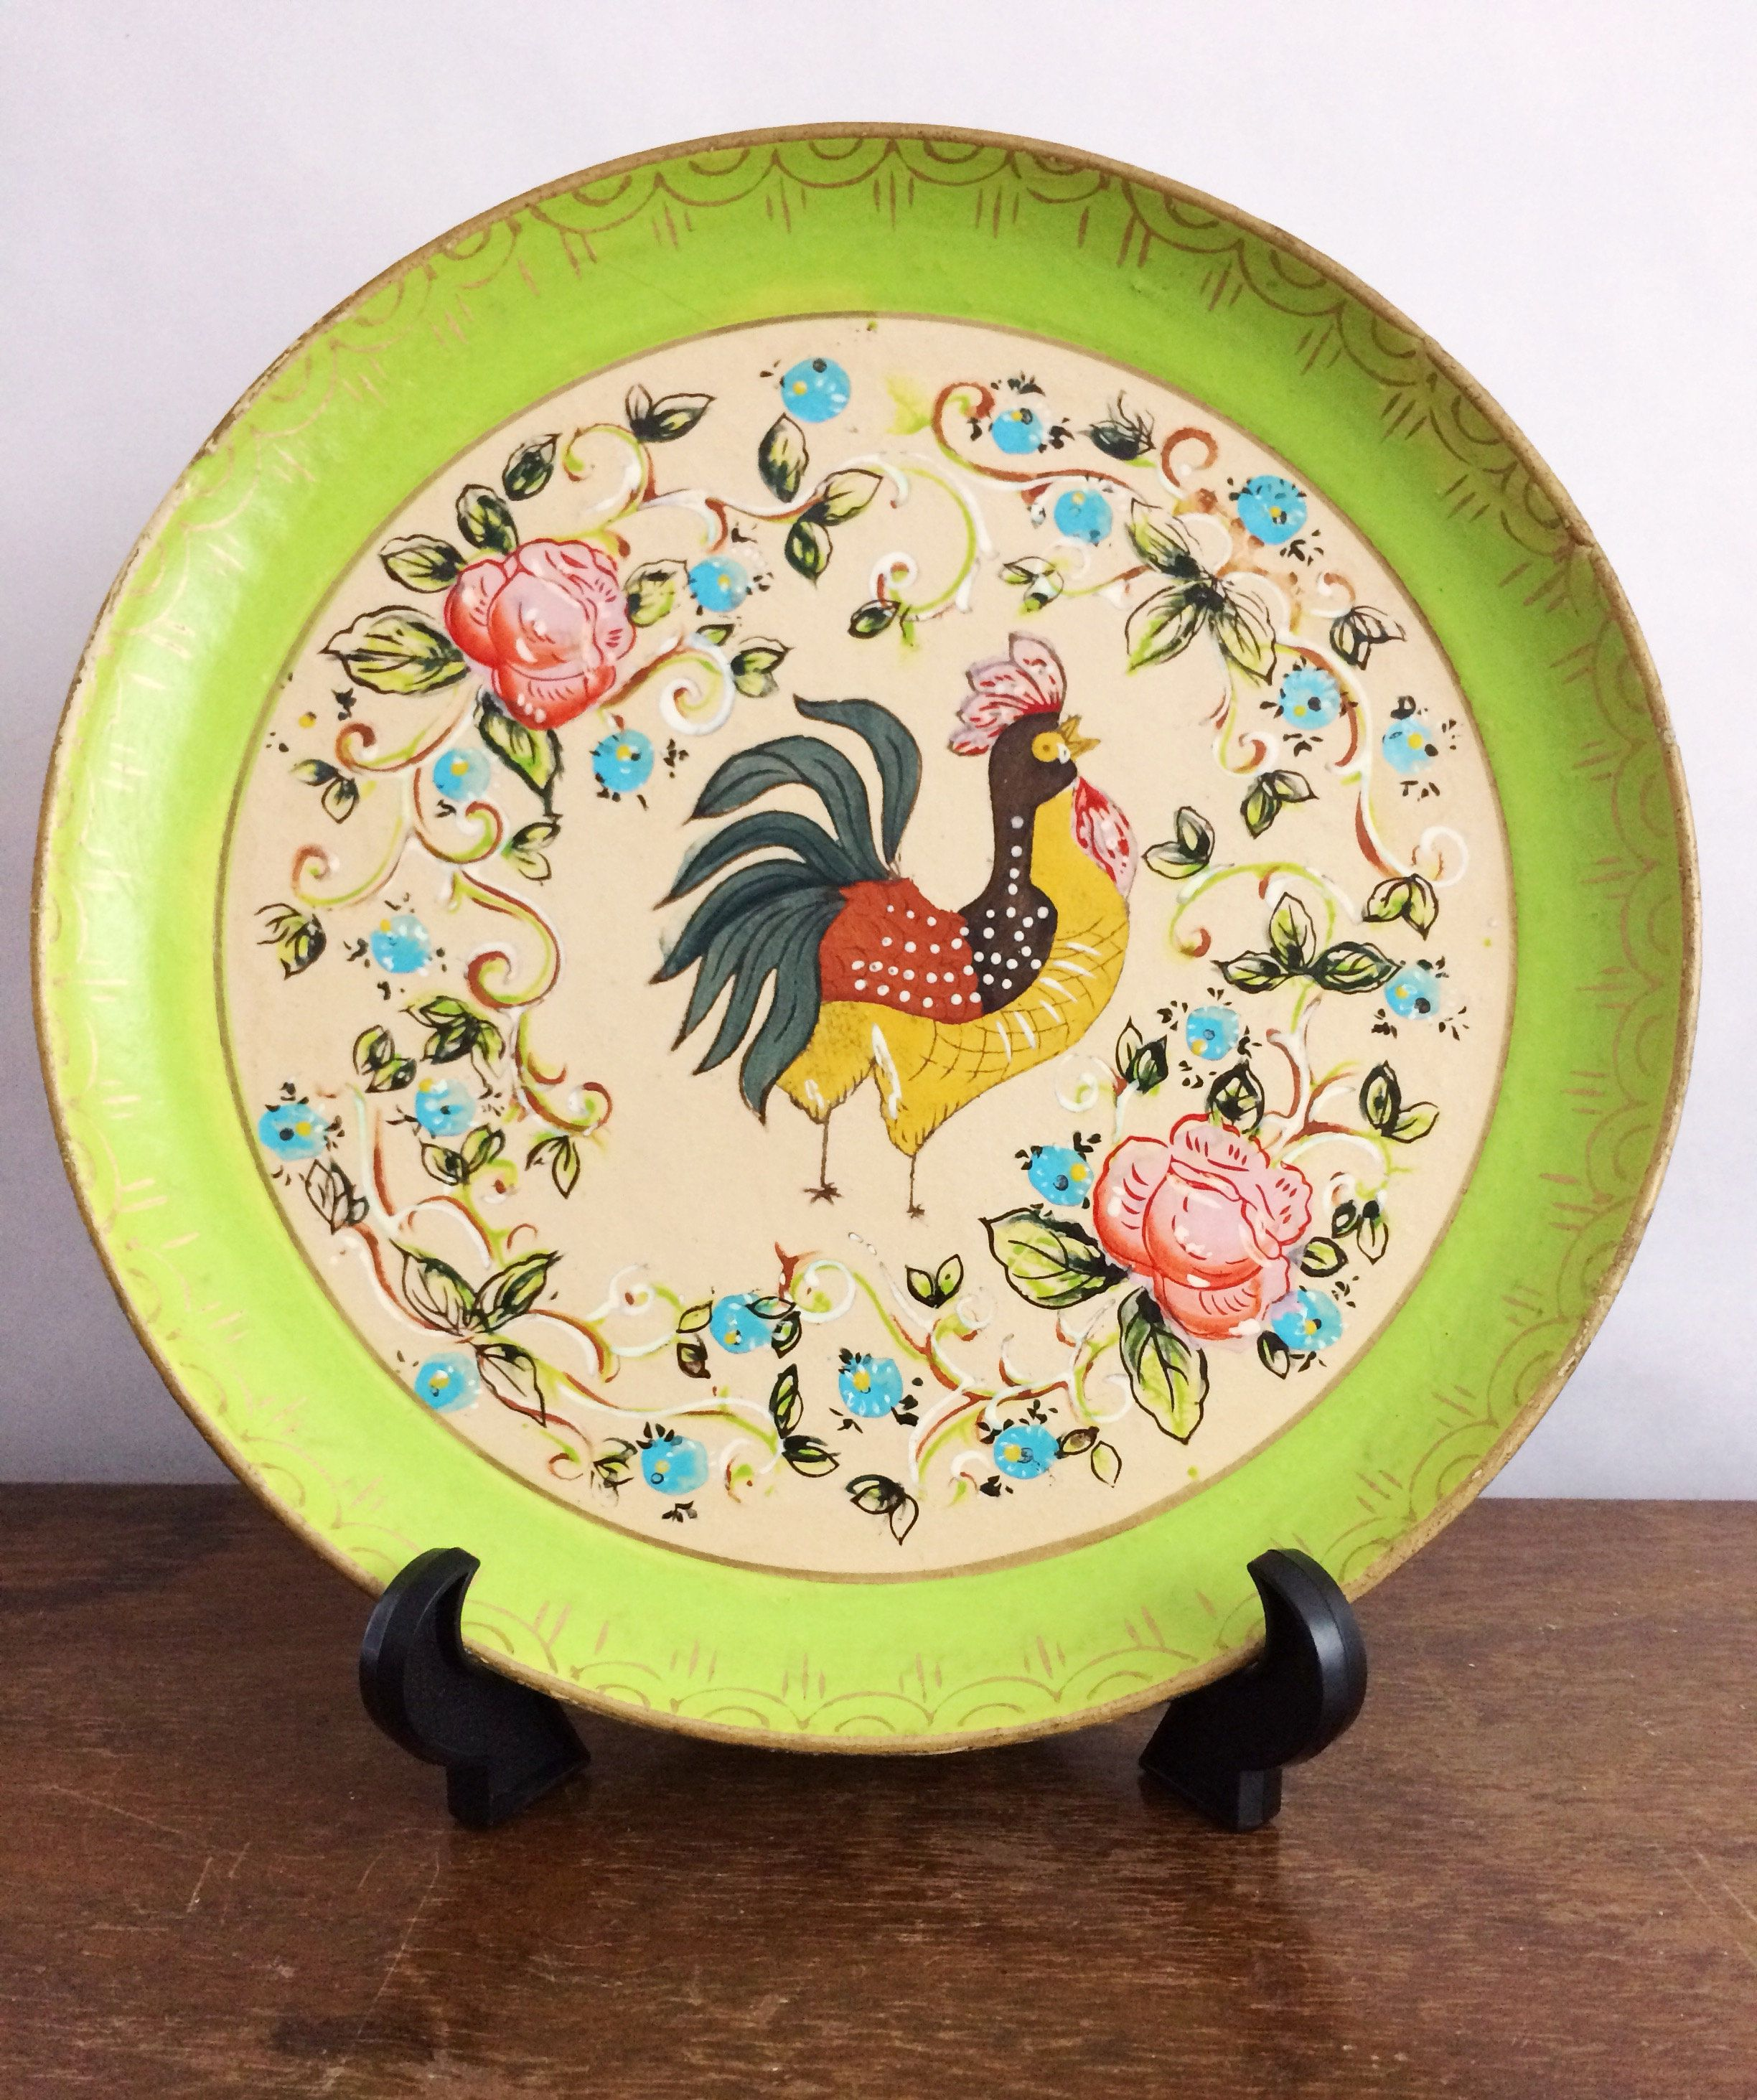 Vintage Hand Painted Wood Bowl Rooster Design Rustic Wall Decor Home ...